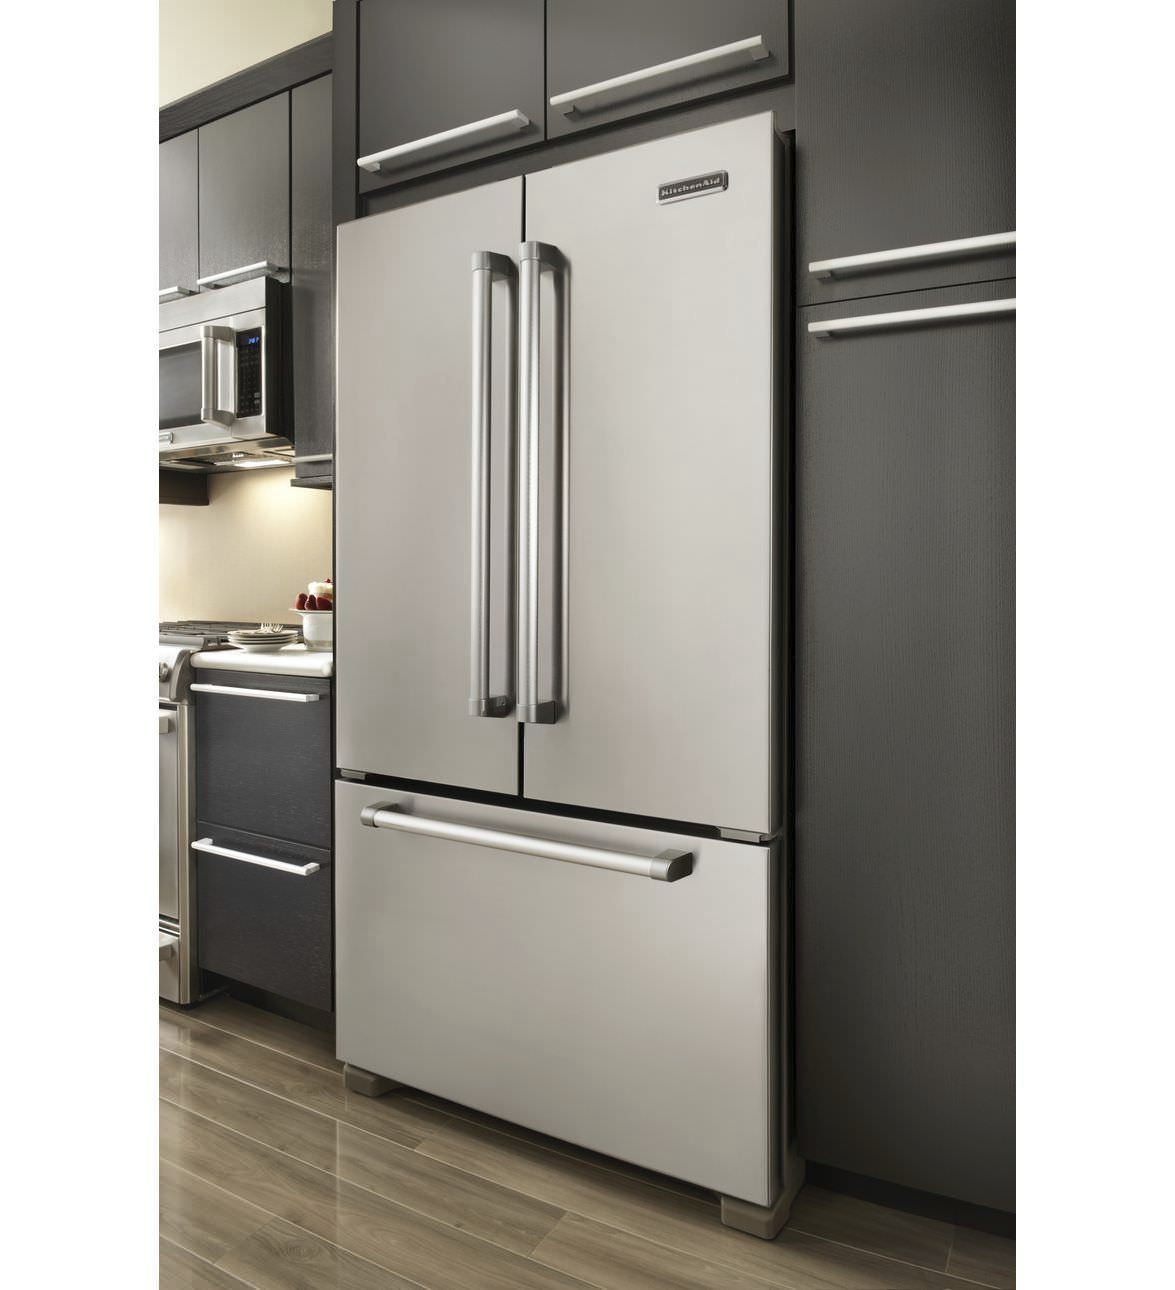 Residential Refrigerator Freezer / American / Stainless Steel /  Energy Efficient KFCP22EXMP KitchenAid ...